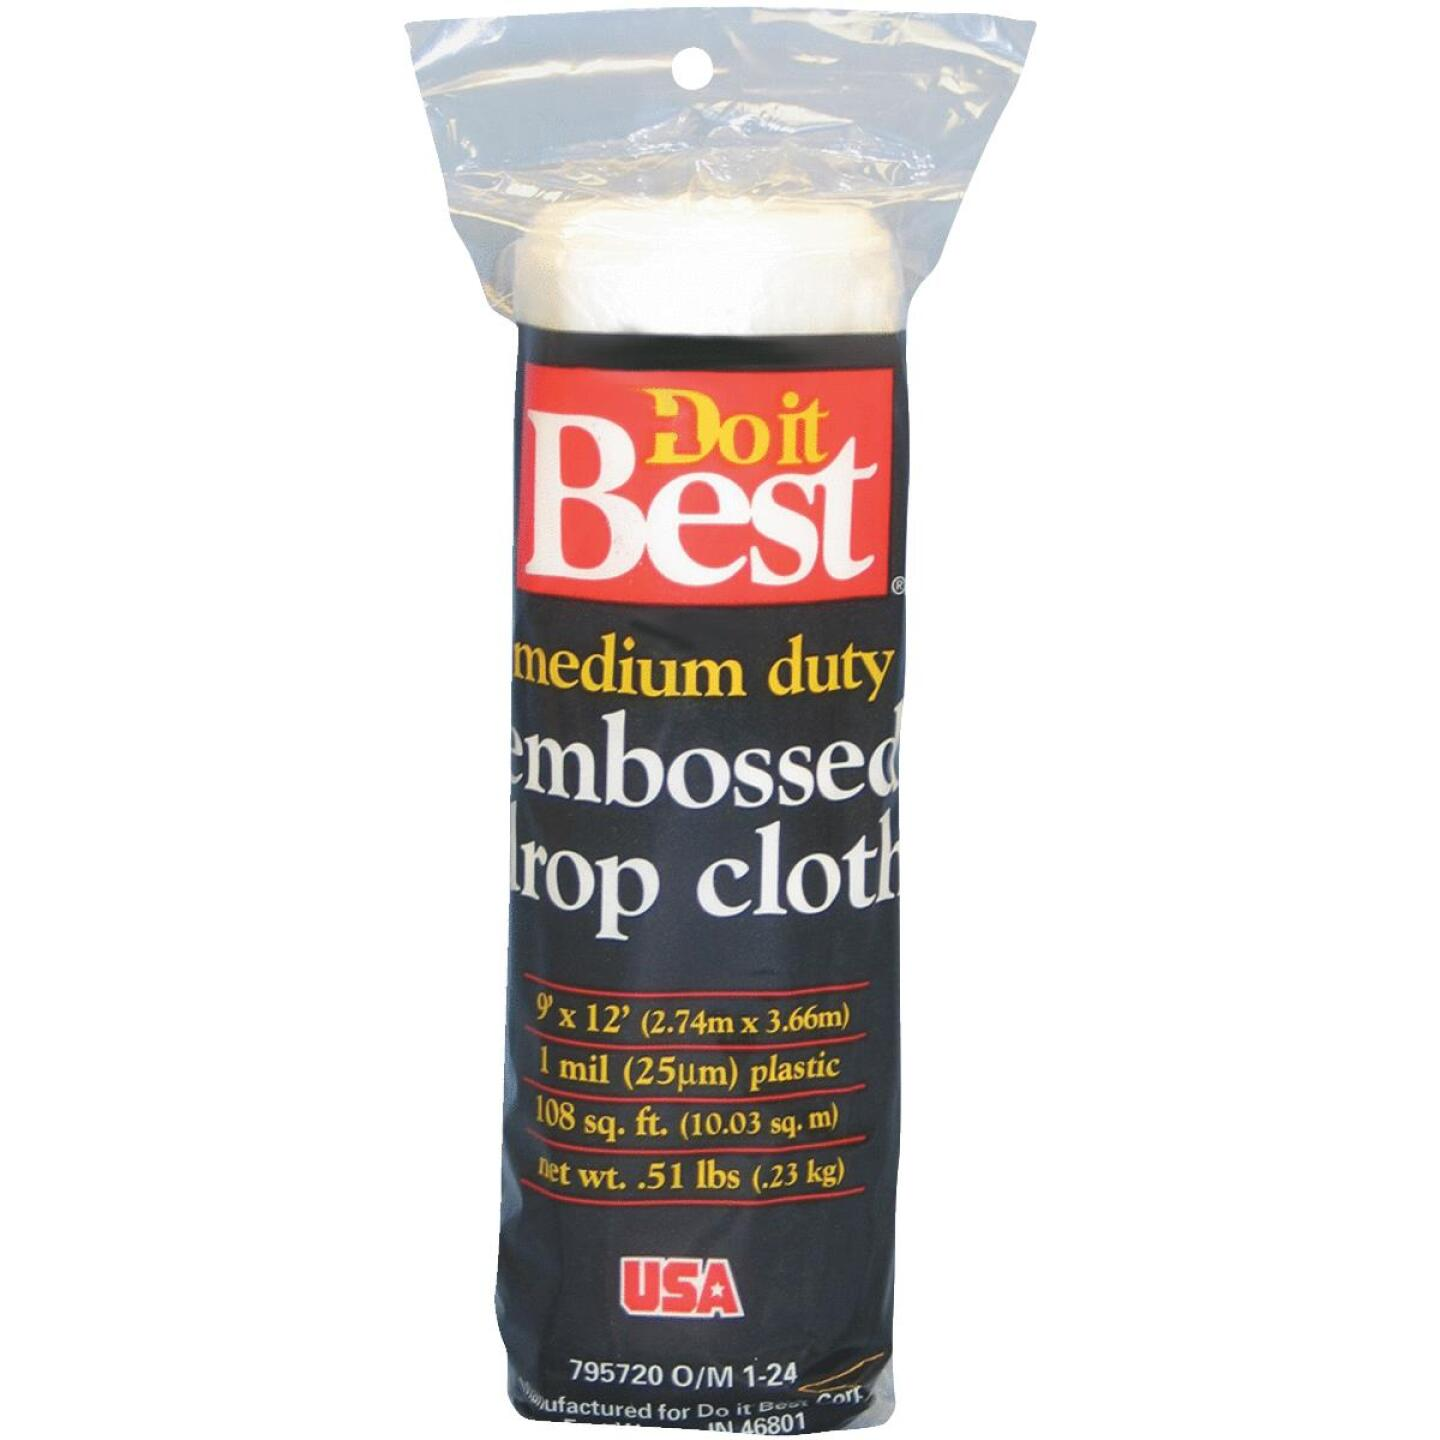 Do it Best Embossed Plastic 9 Ft. x 12 Ft. 1 mil Drop Cloth Image 1